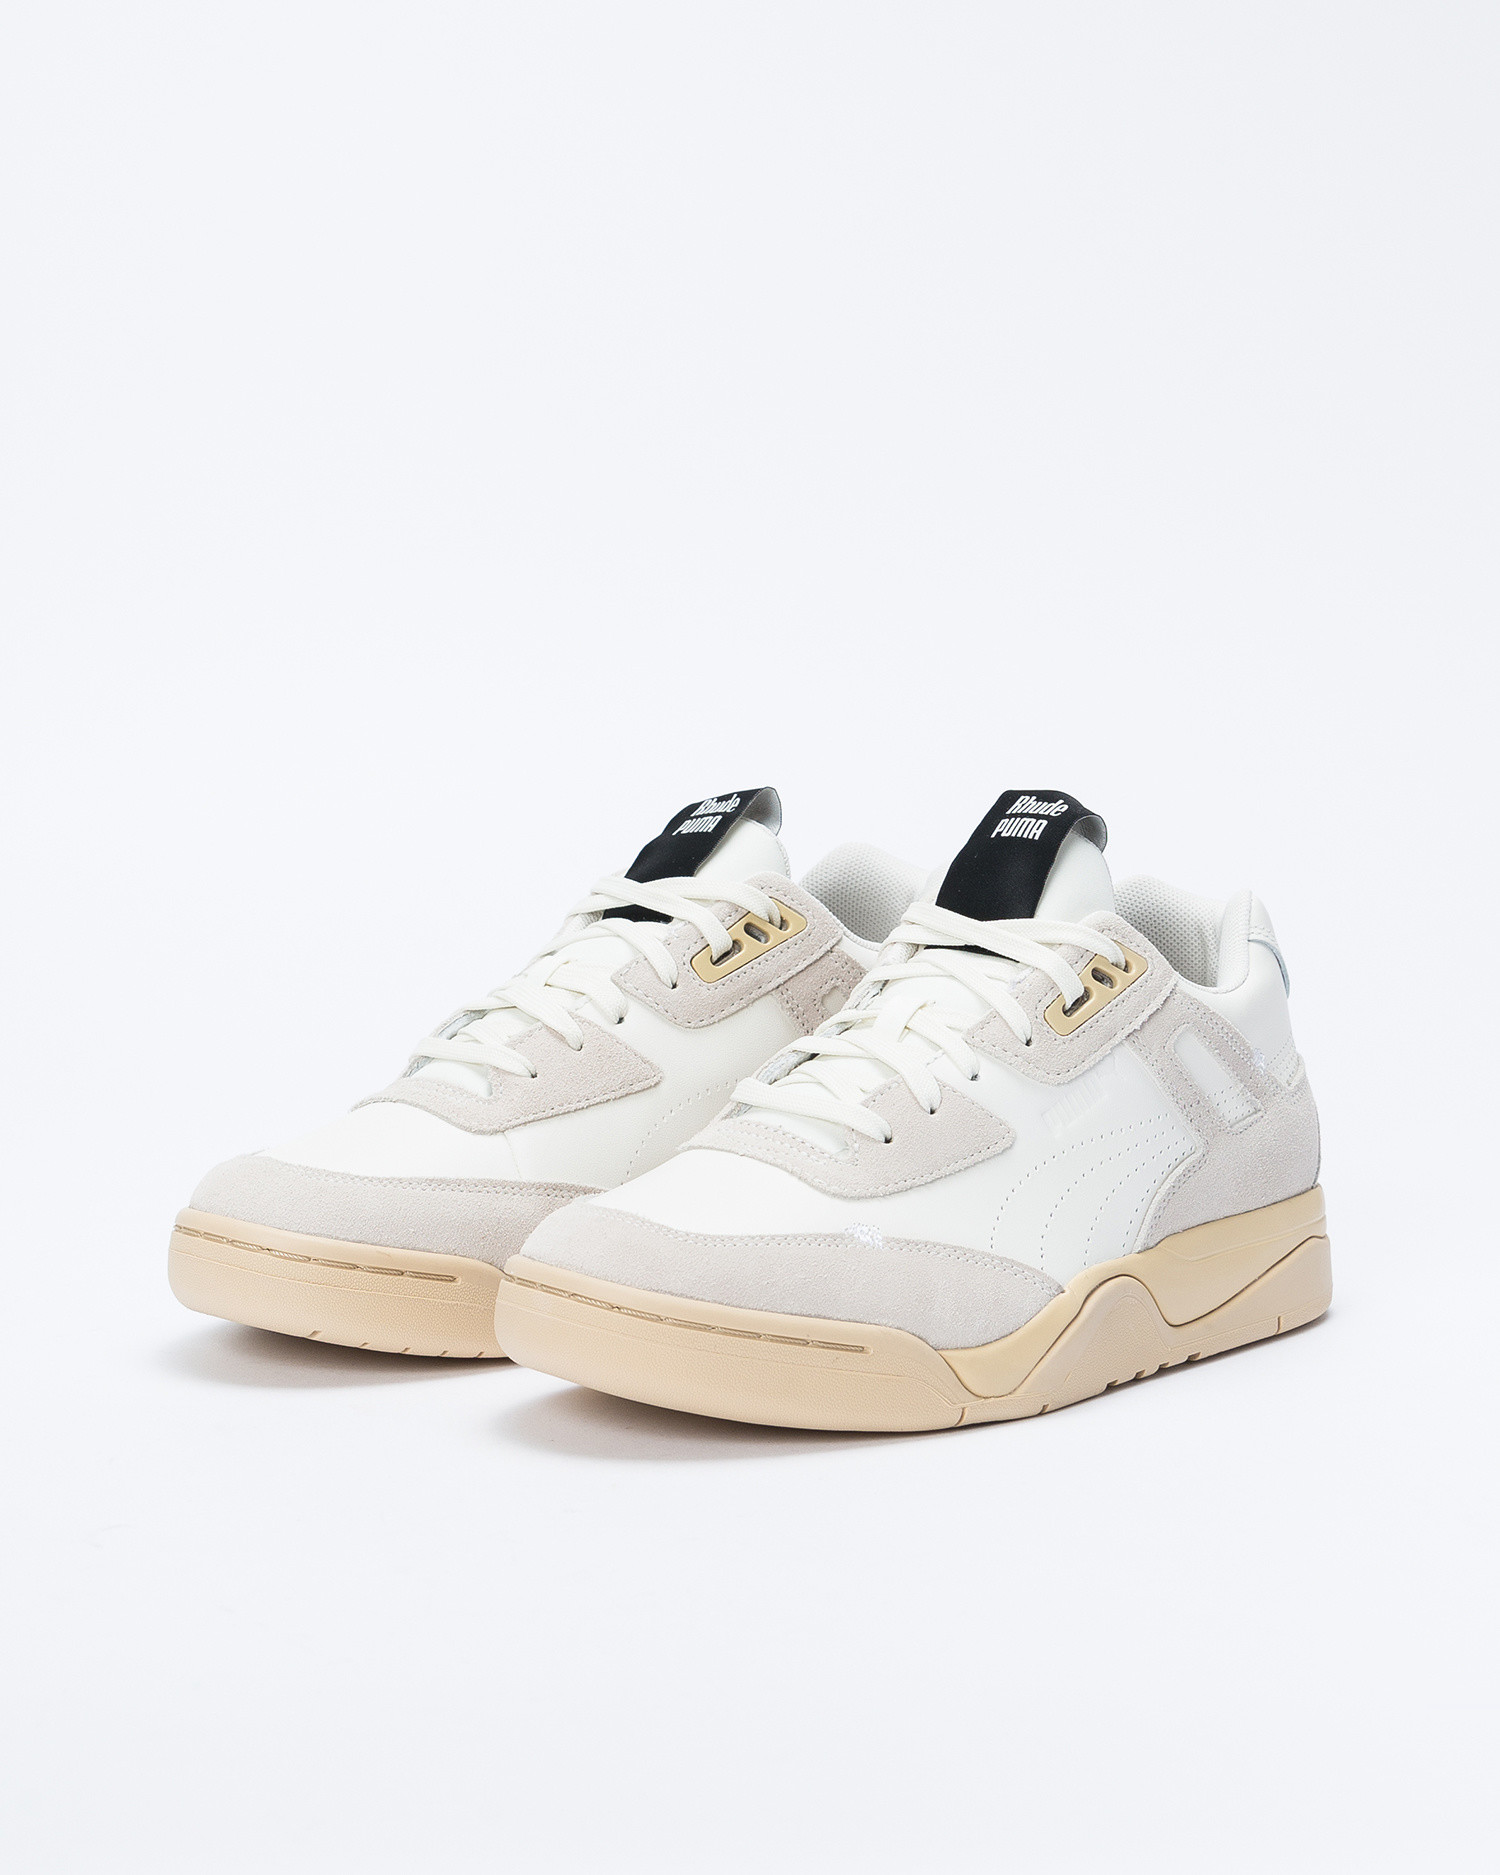 Puma x Rhude Palace Guard Star white/Windchime